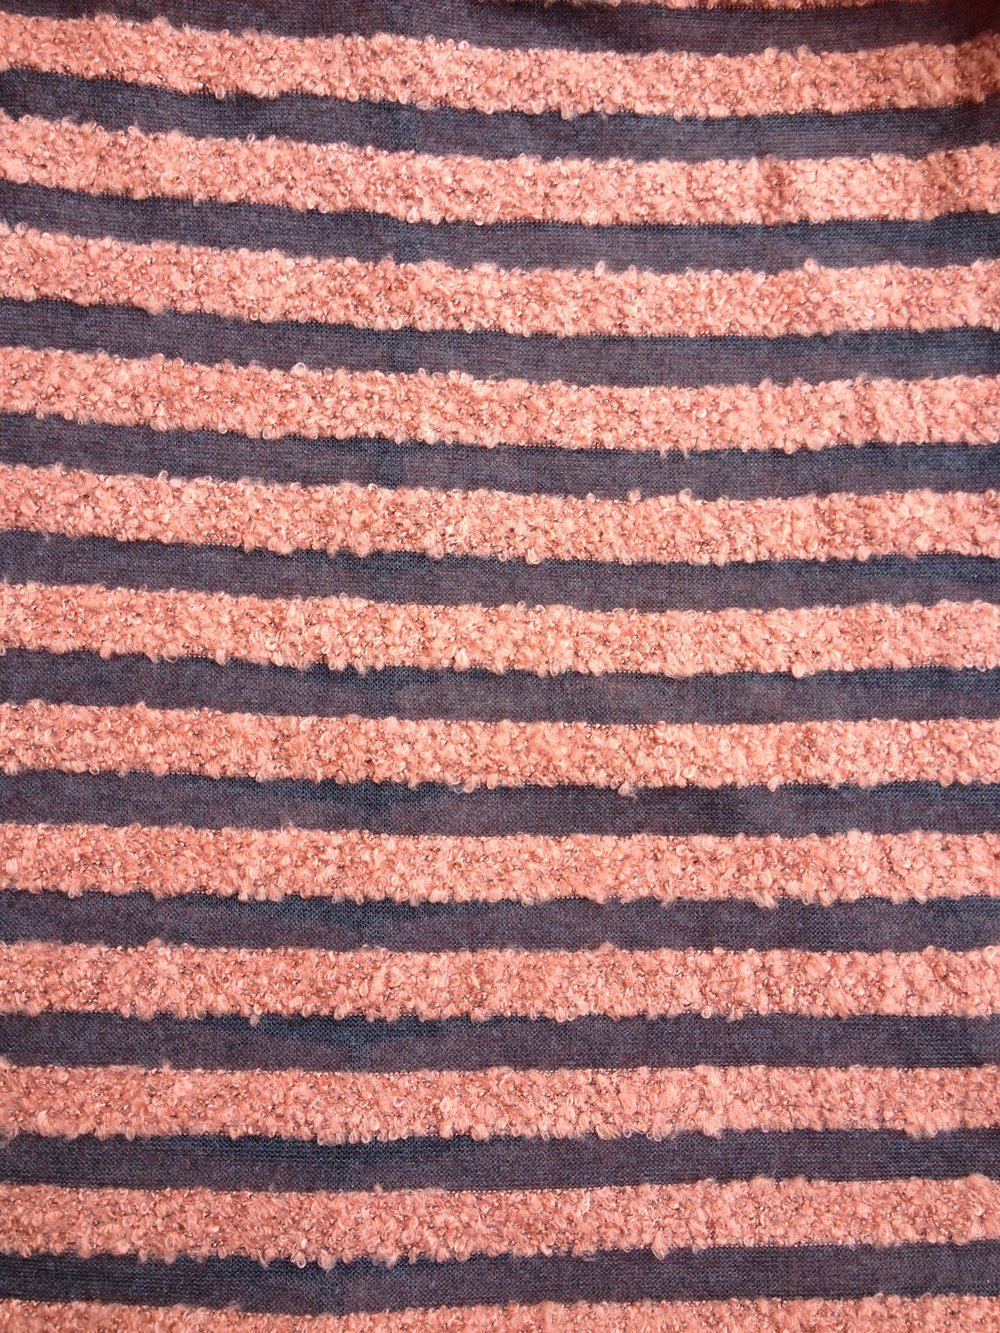 History of the stripe